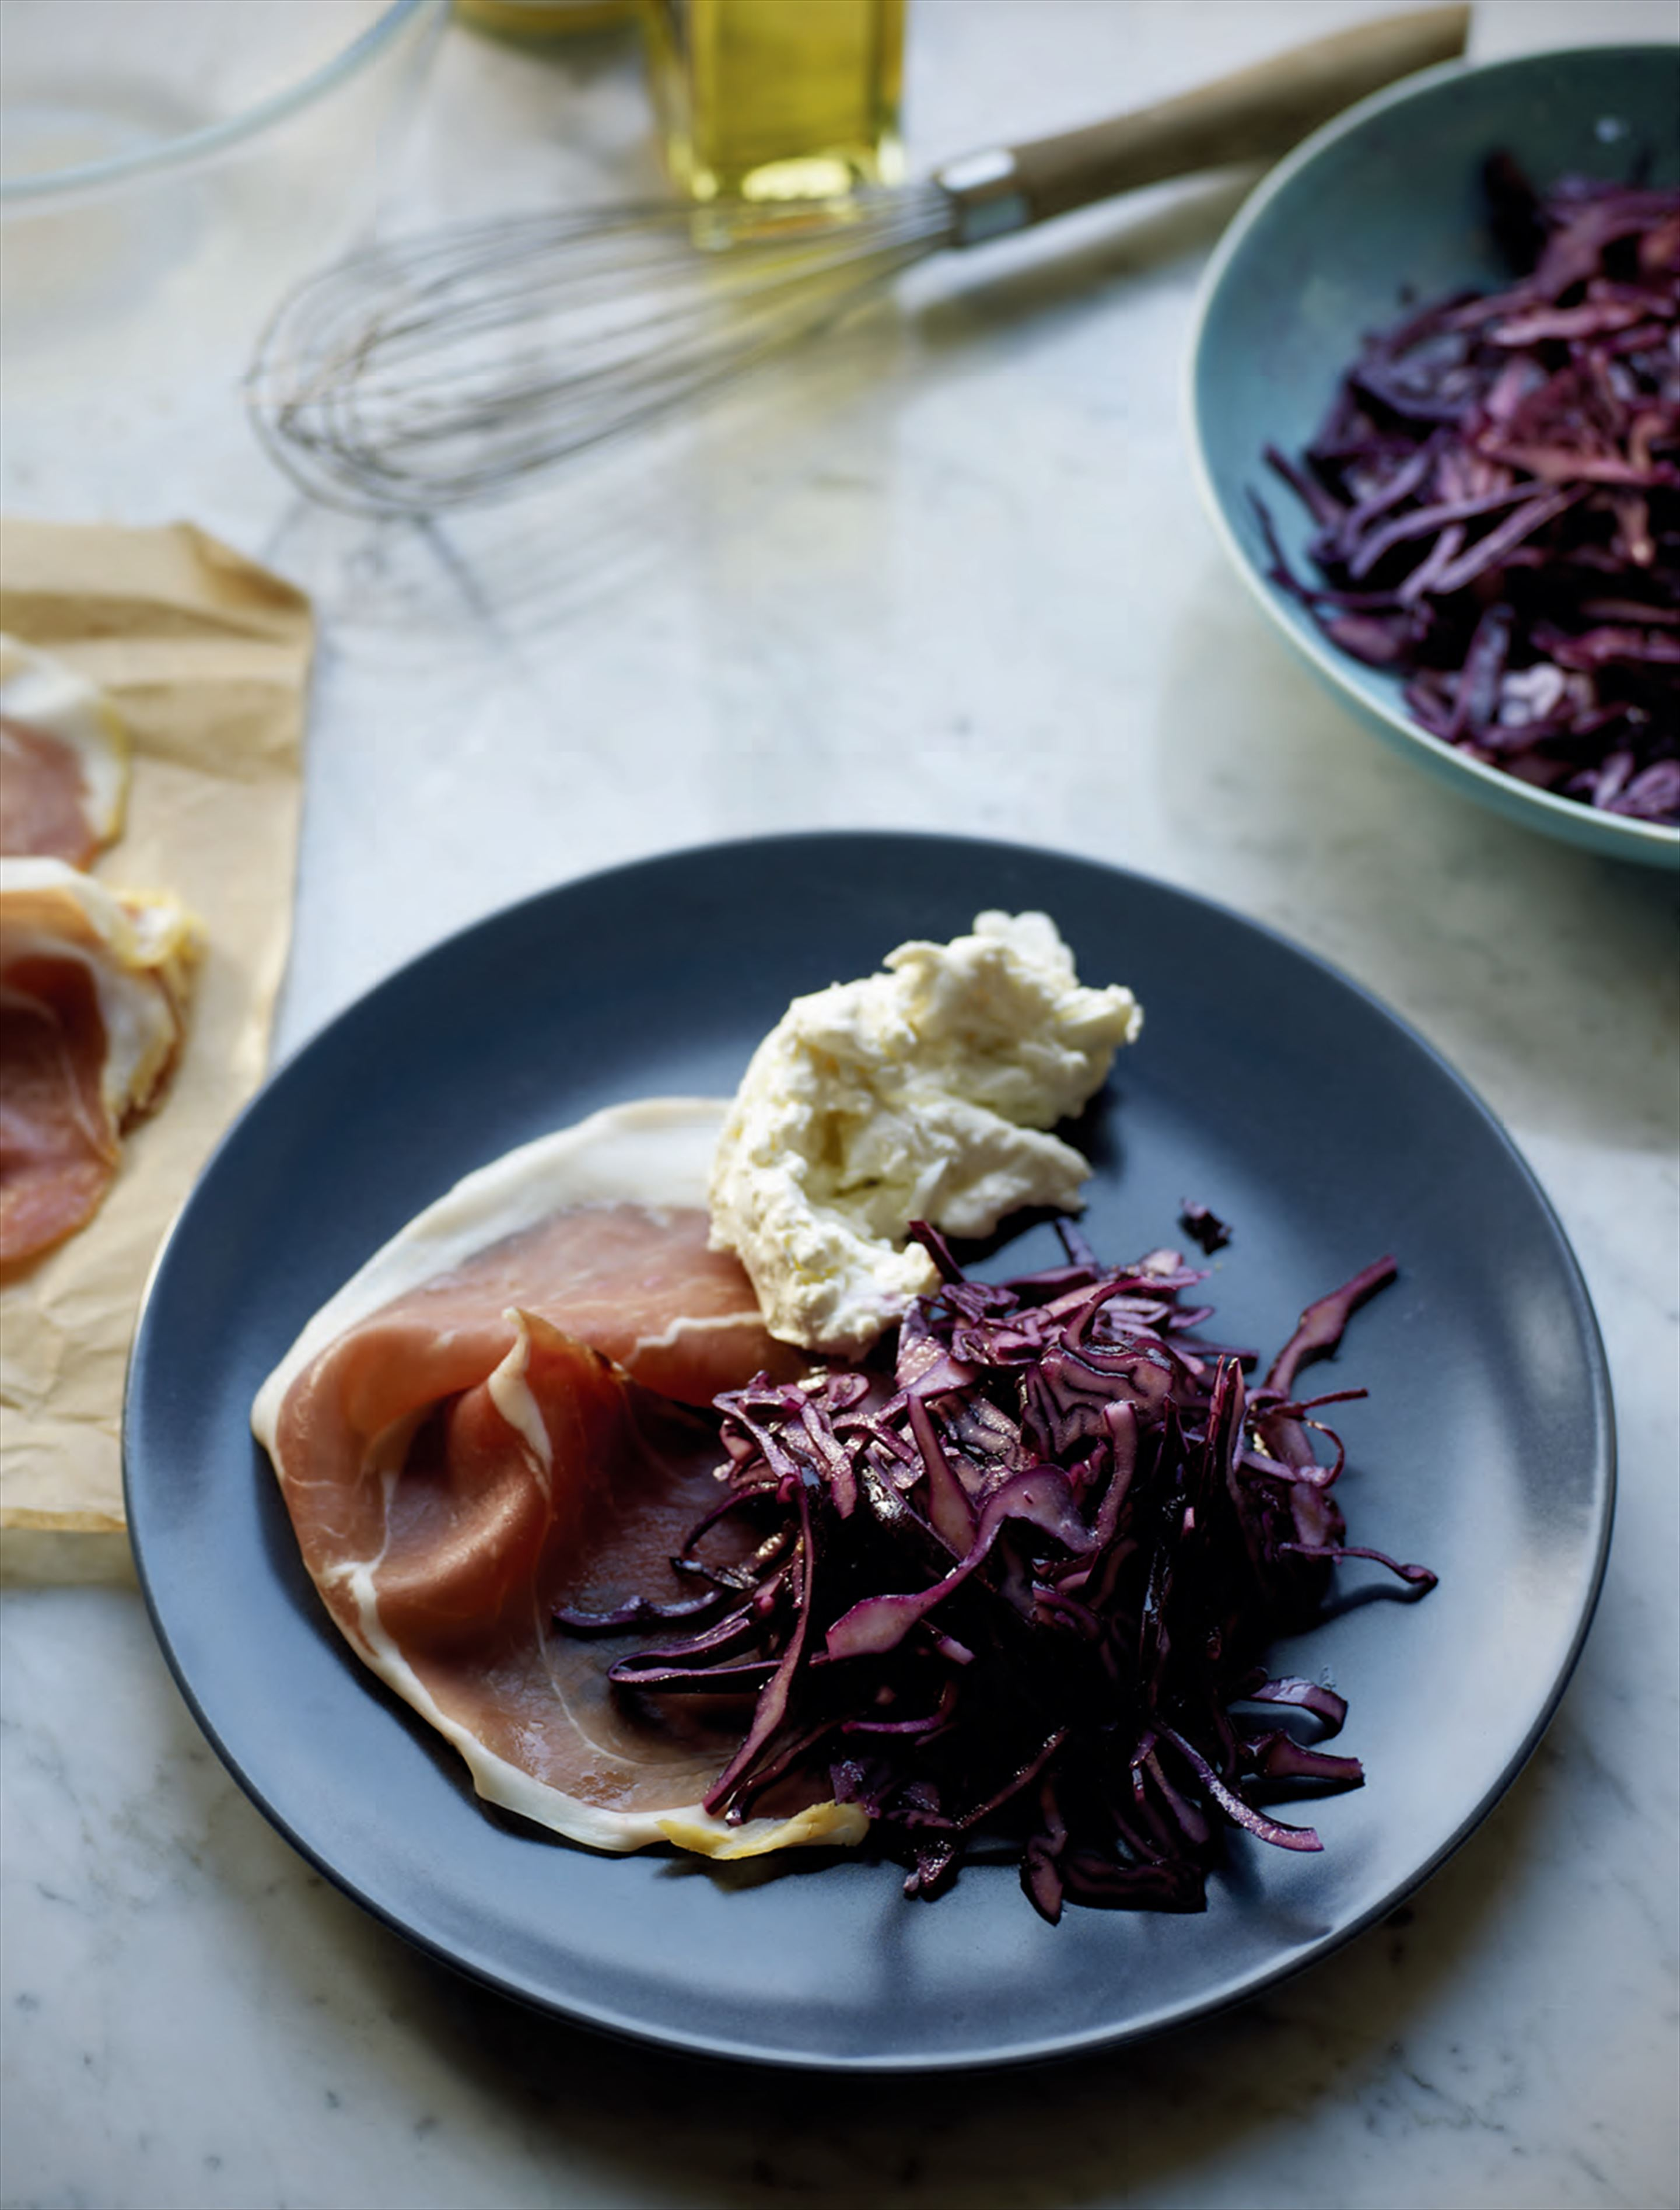 Hampshire mozzarella with red cabbage & parma ham